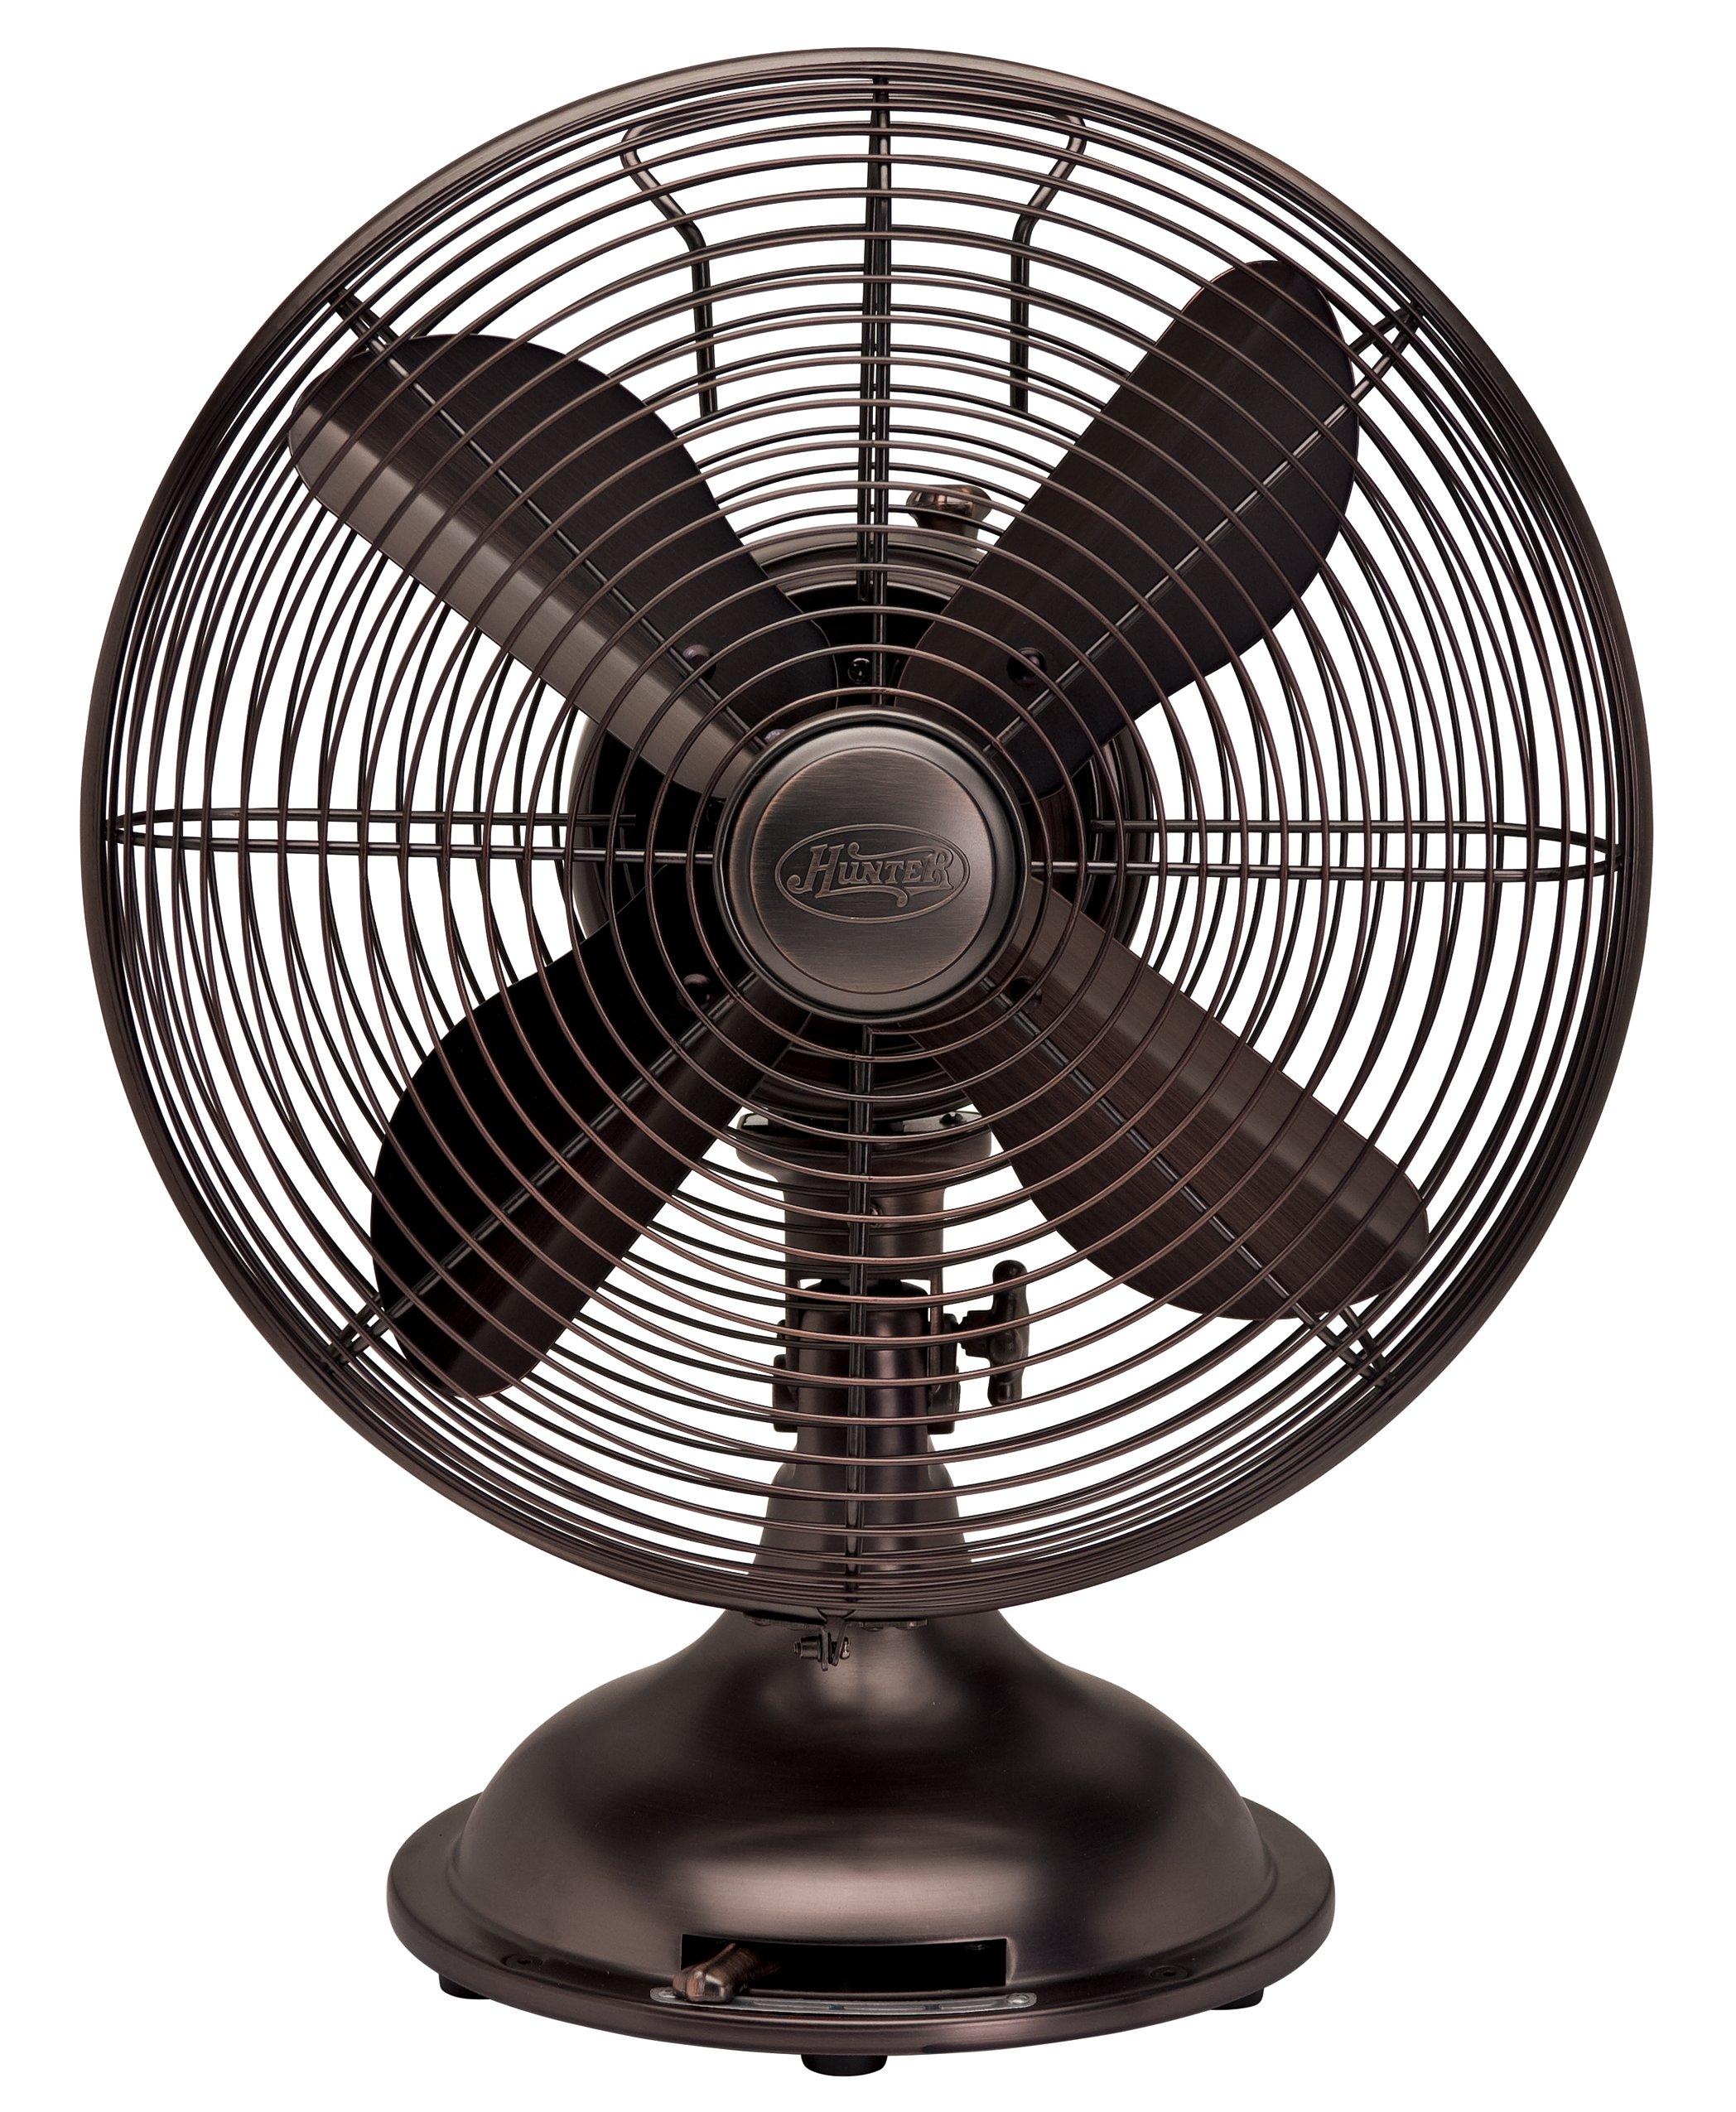 Hunter Fan 90406 12'' Oscillating Desk Fan - oil rubbed bronze Color by Hunter Fan Company